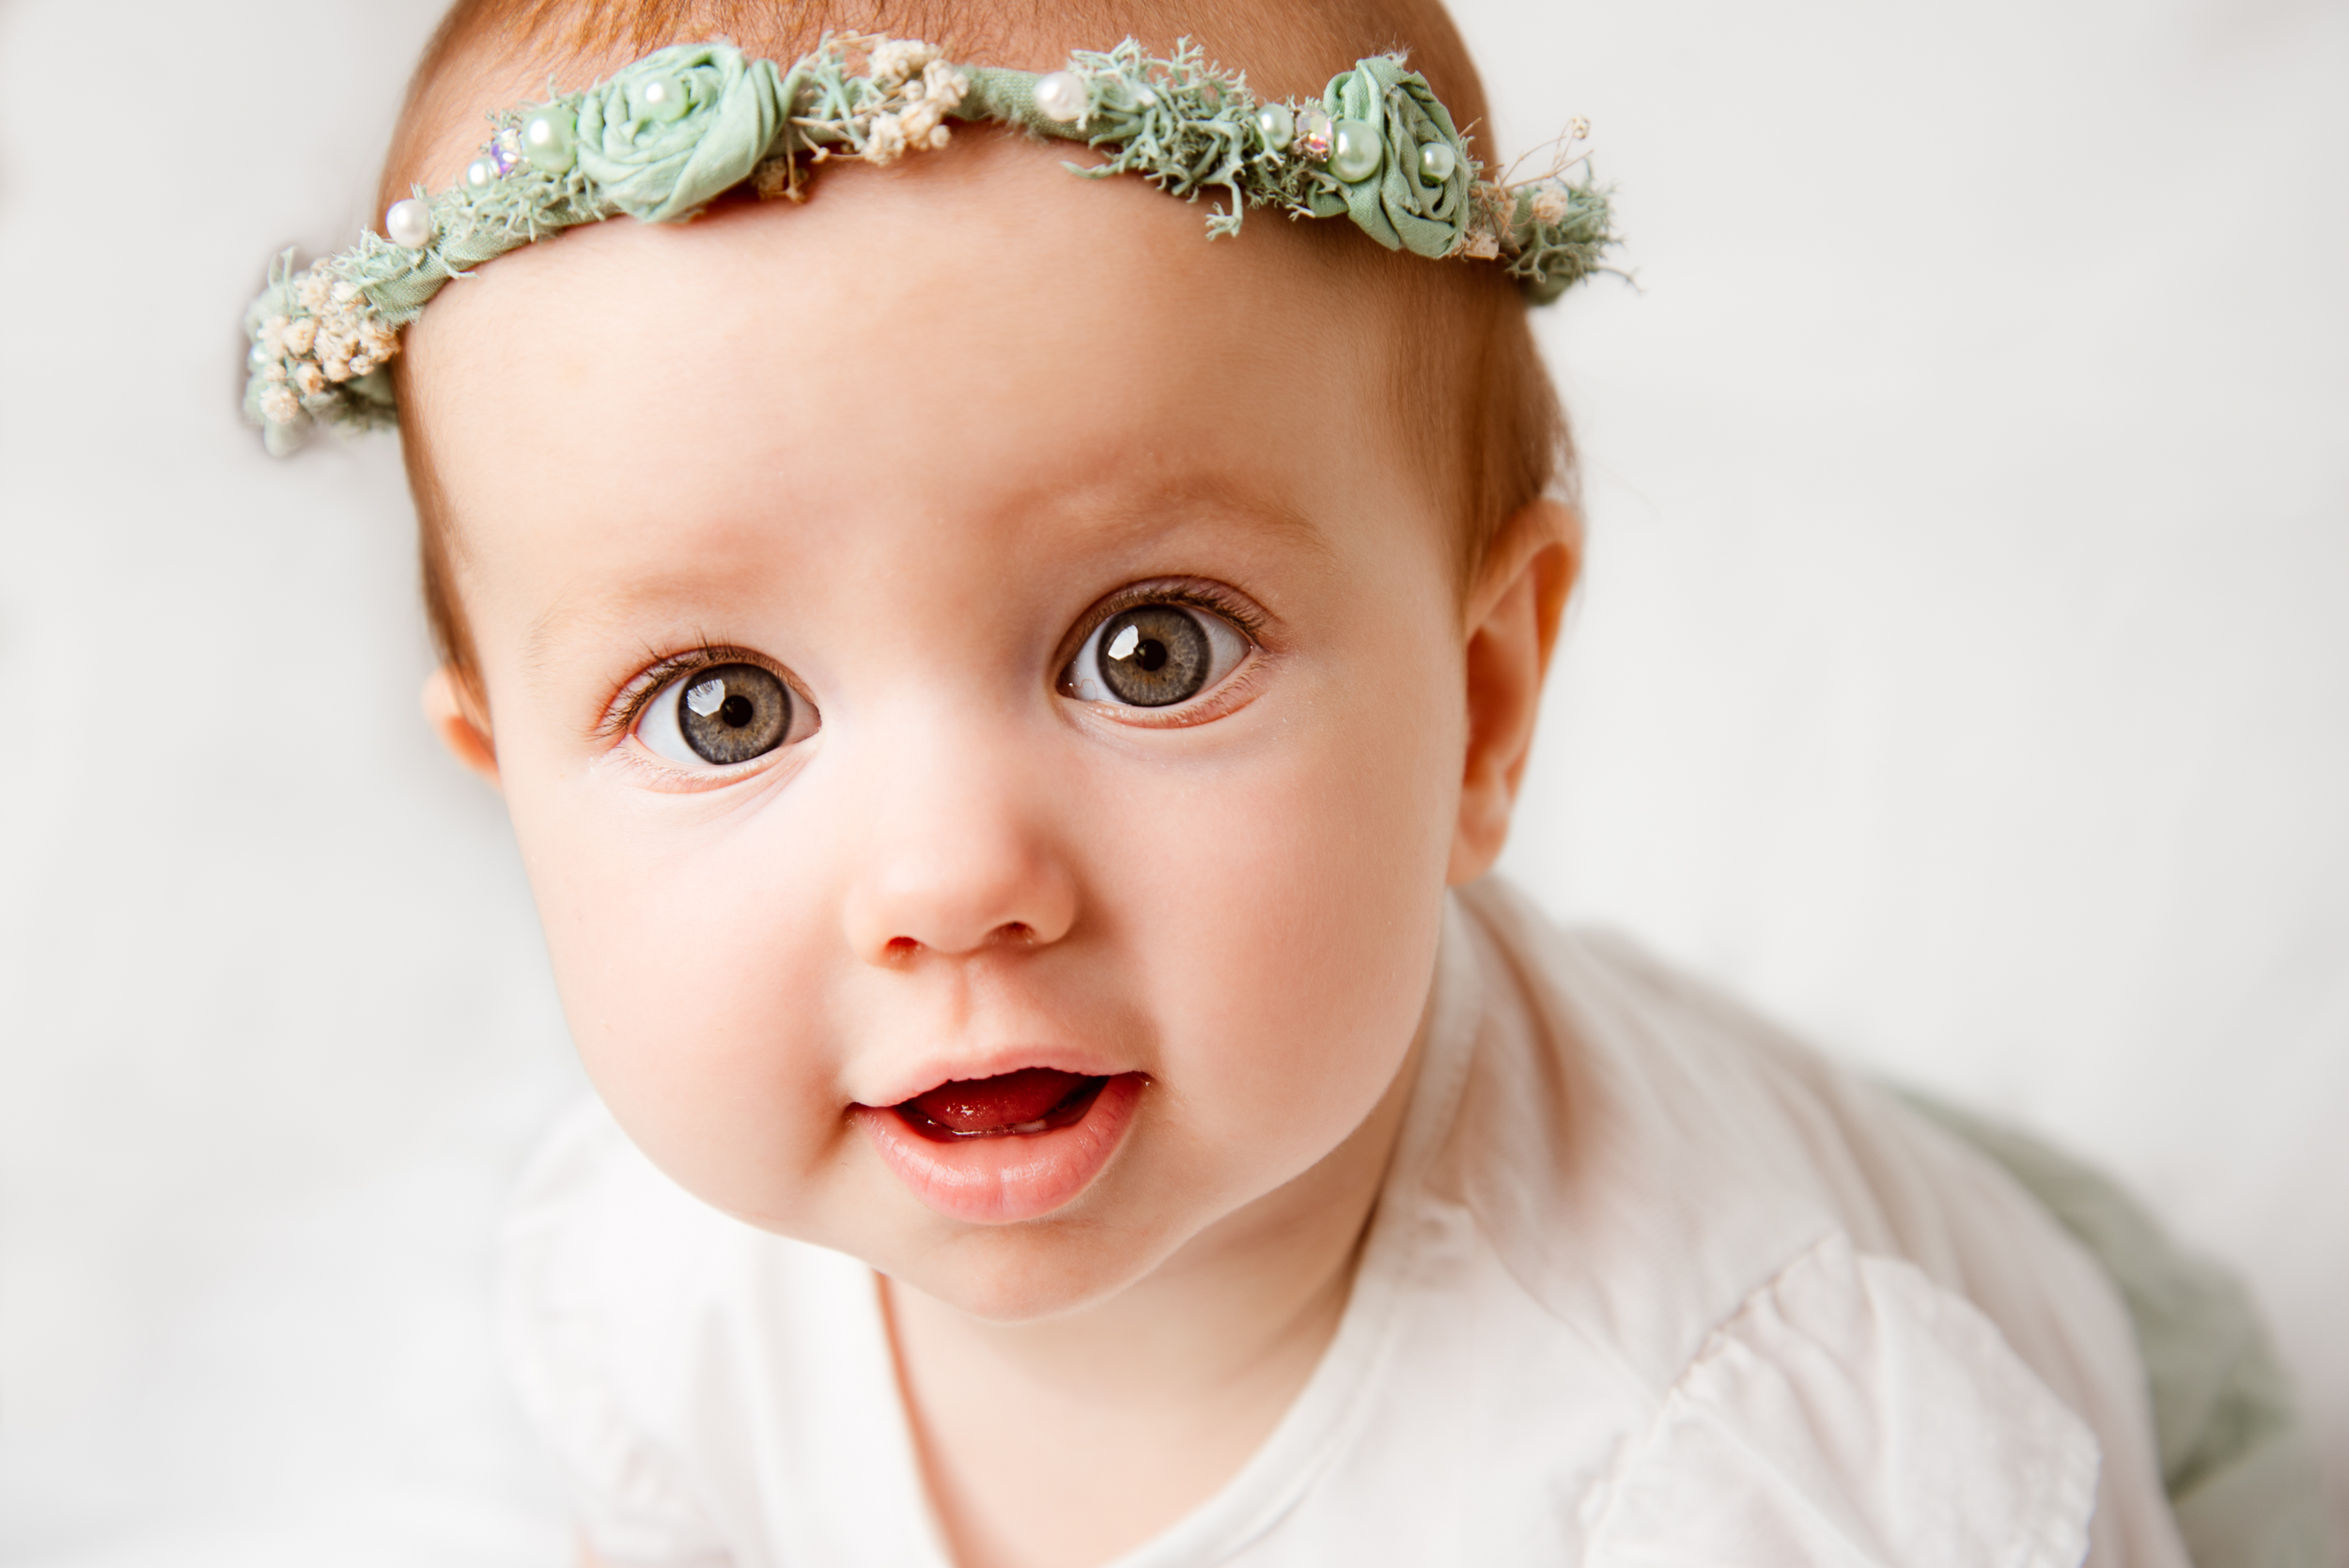 Baby Girl with floral headband